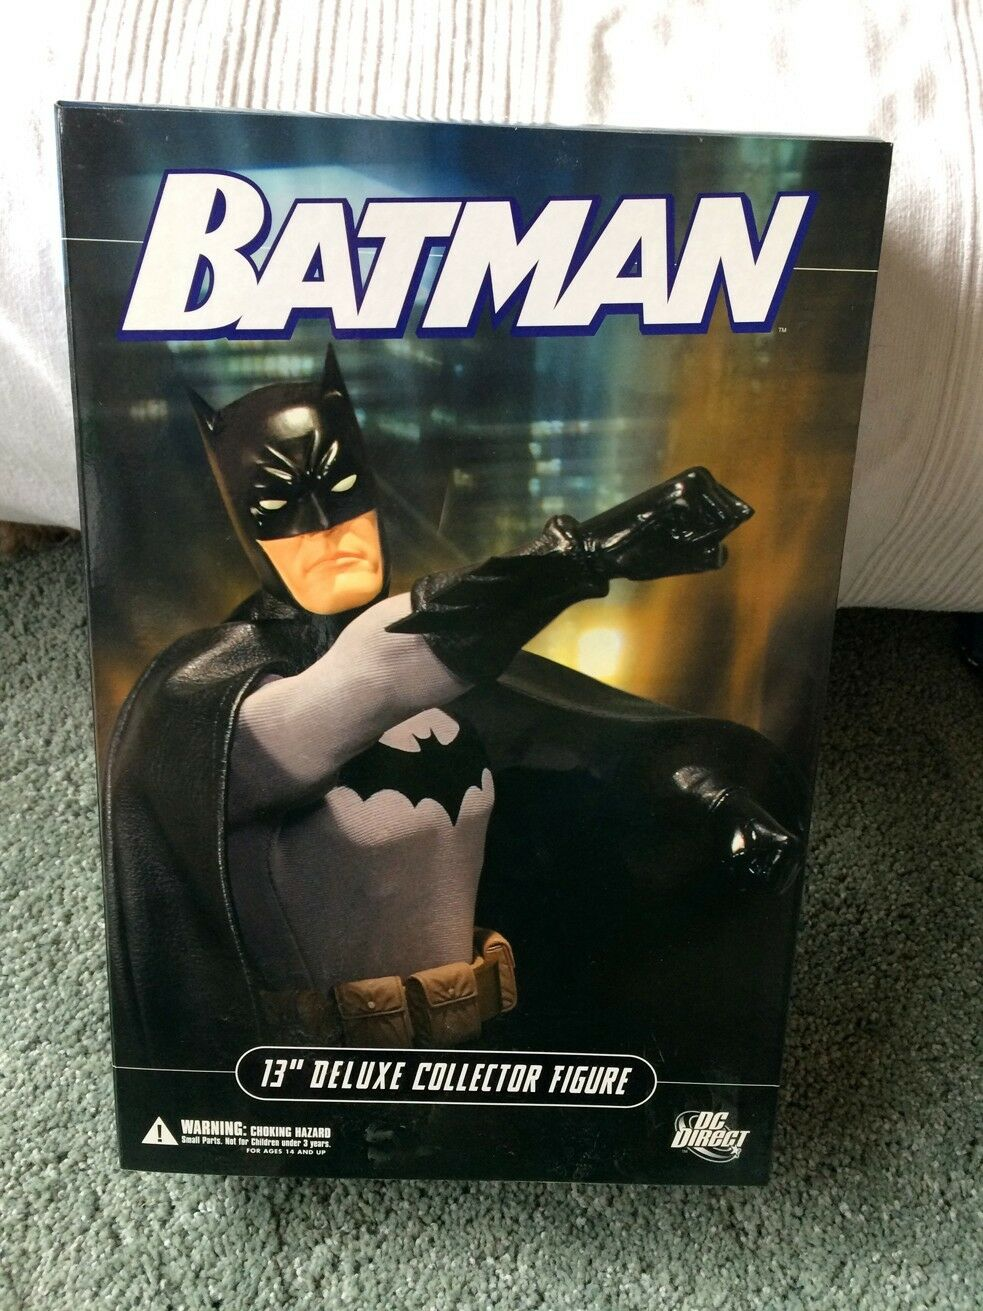 13-Inch Deluxe Batman Collector Action Figure from DC Direct Excellent condition